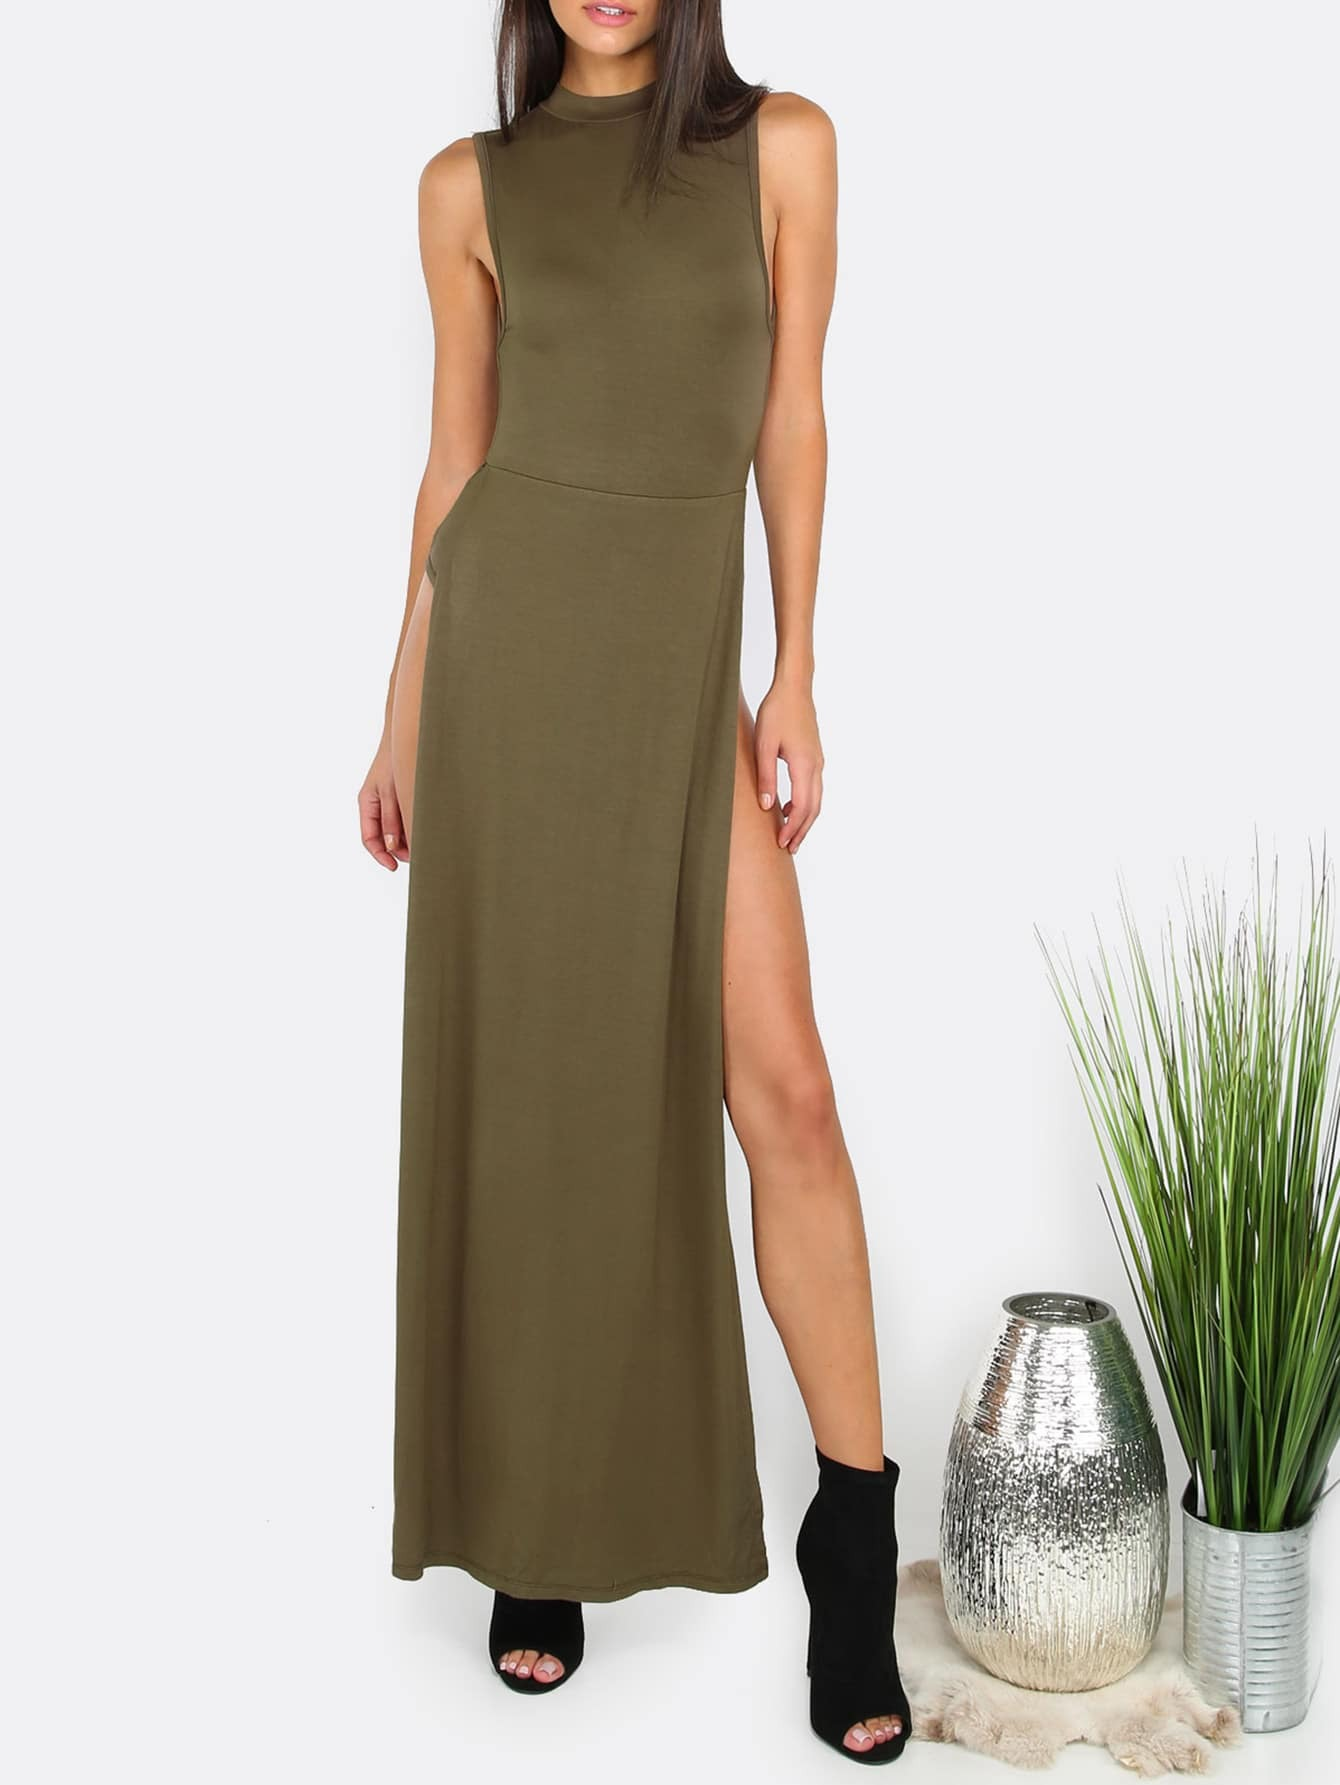 Army Green Split Side Sleeveless Maxi DressArmy Green Split Side Sleeveless Maxi Dress<br><br>color: Army Green<br>size: L,M,S,XS